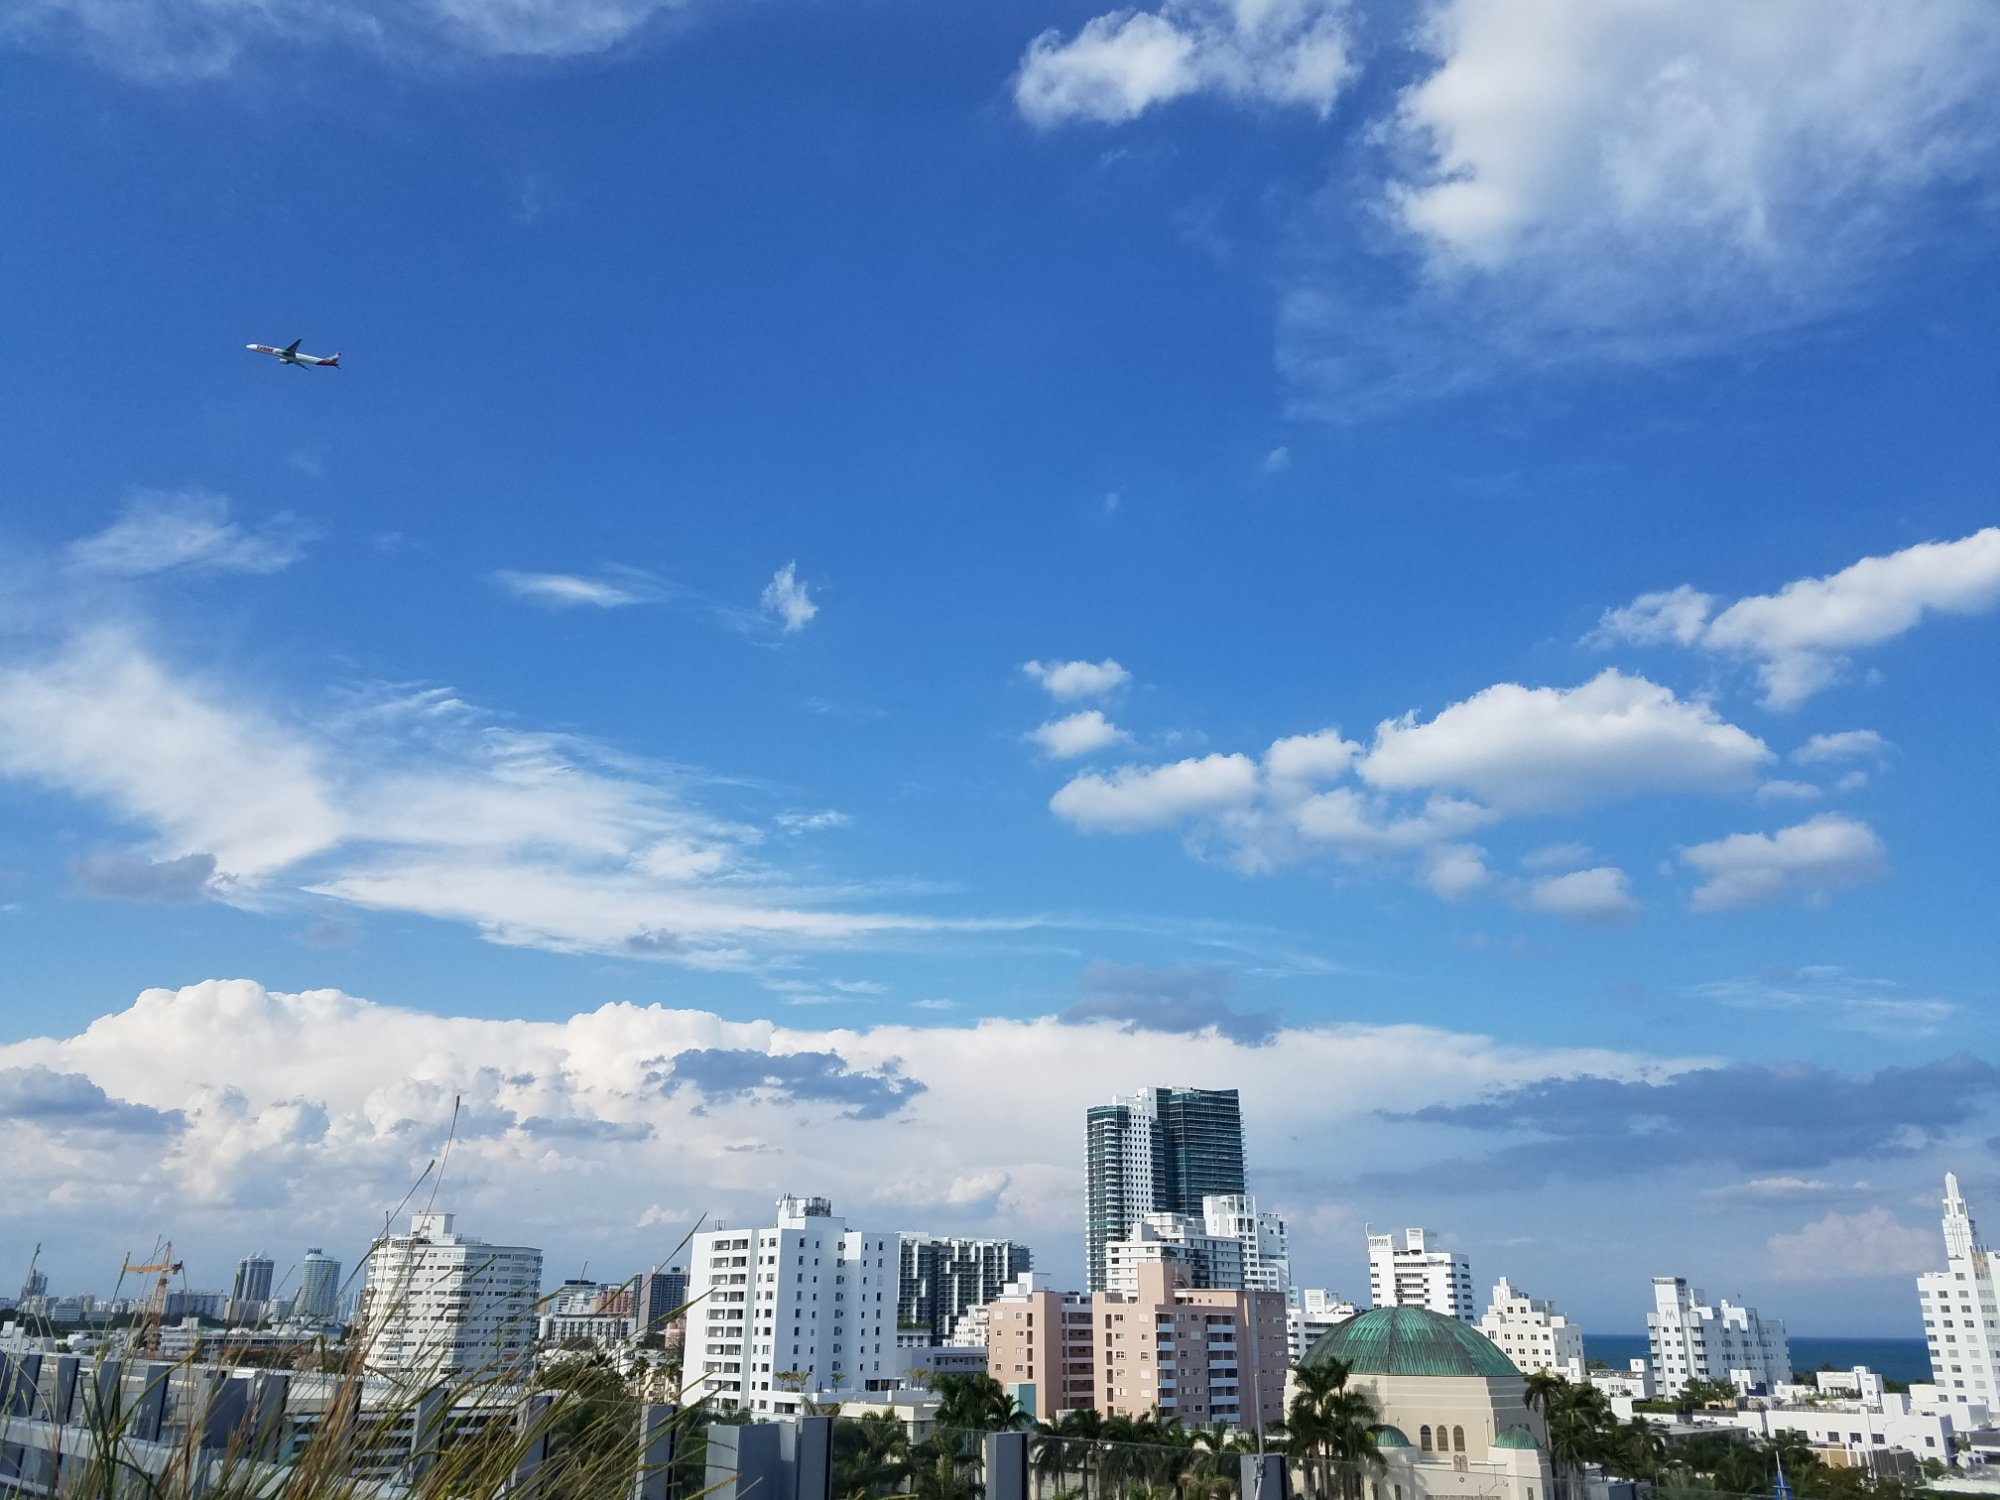 Downtown Miami Beach, from the top of the New World Symphony